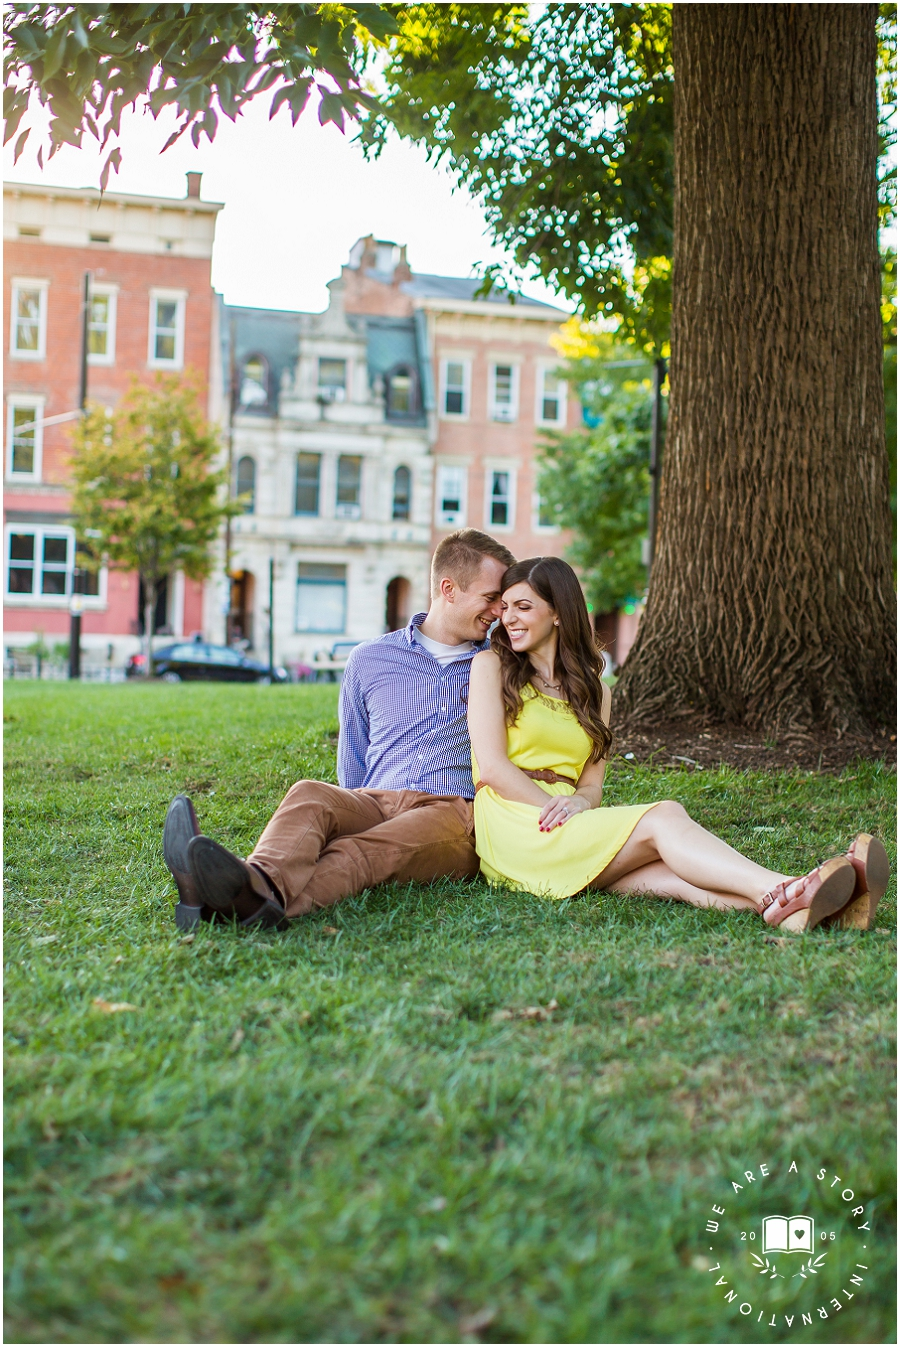 cincinnati-engagement-wedding-photographer-washington-park-otr-engagement-photos-www-weareastory-com_2301